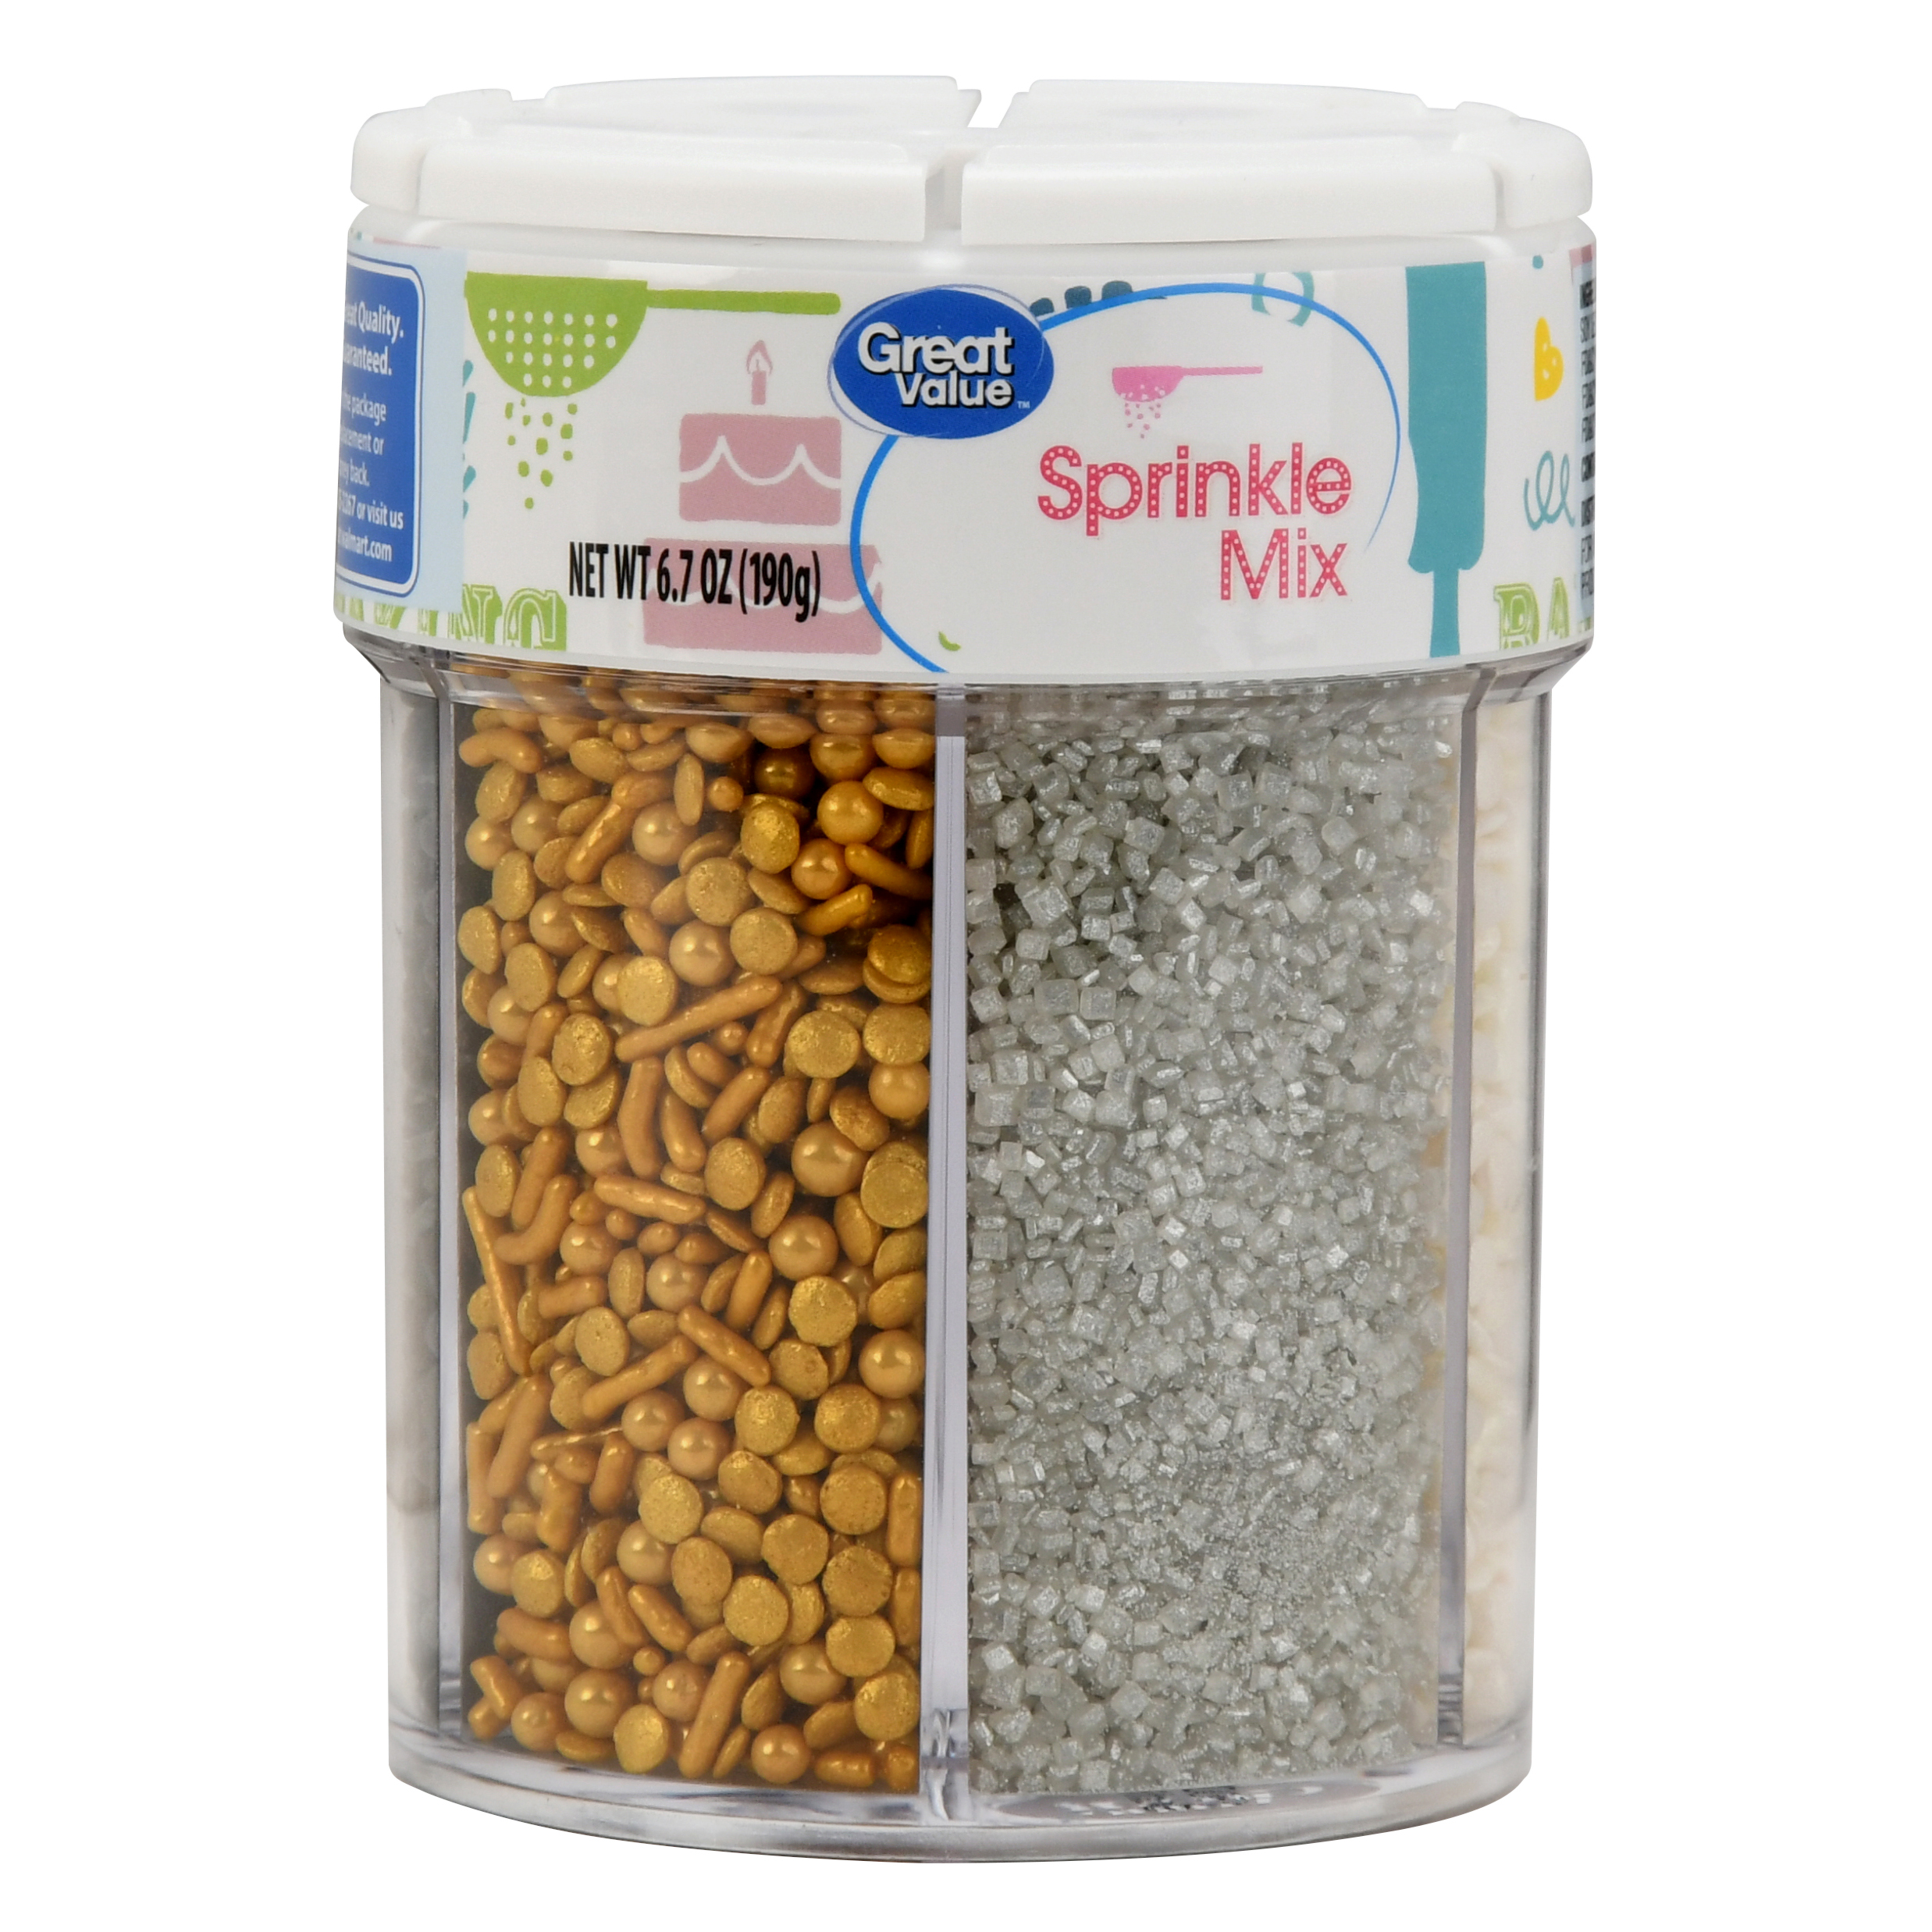 Great Value Sprinkle Mix, 6-Cell, Gold/Silver/Black/White, 6.35 oz